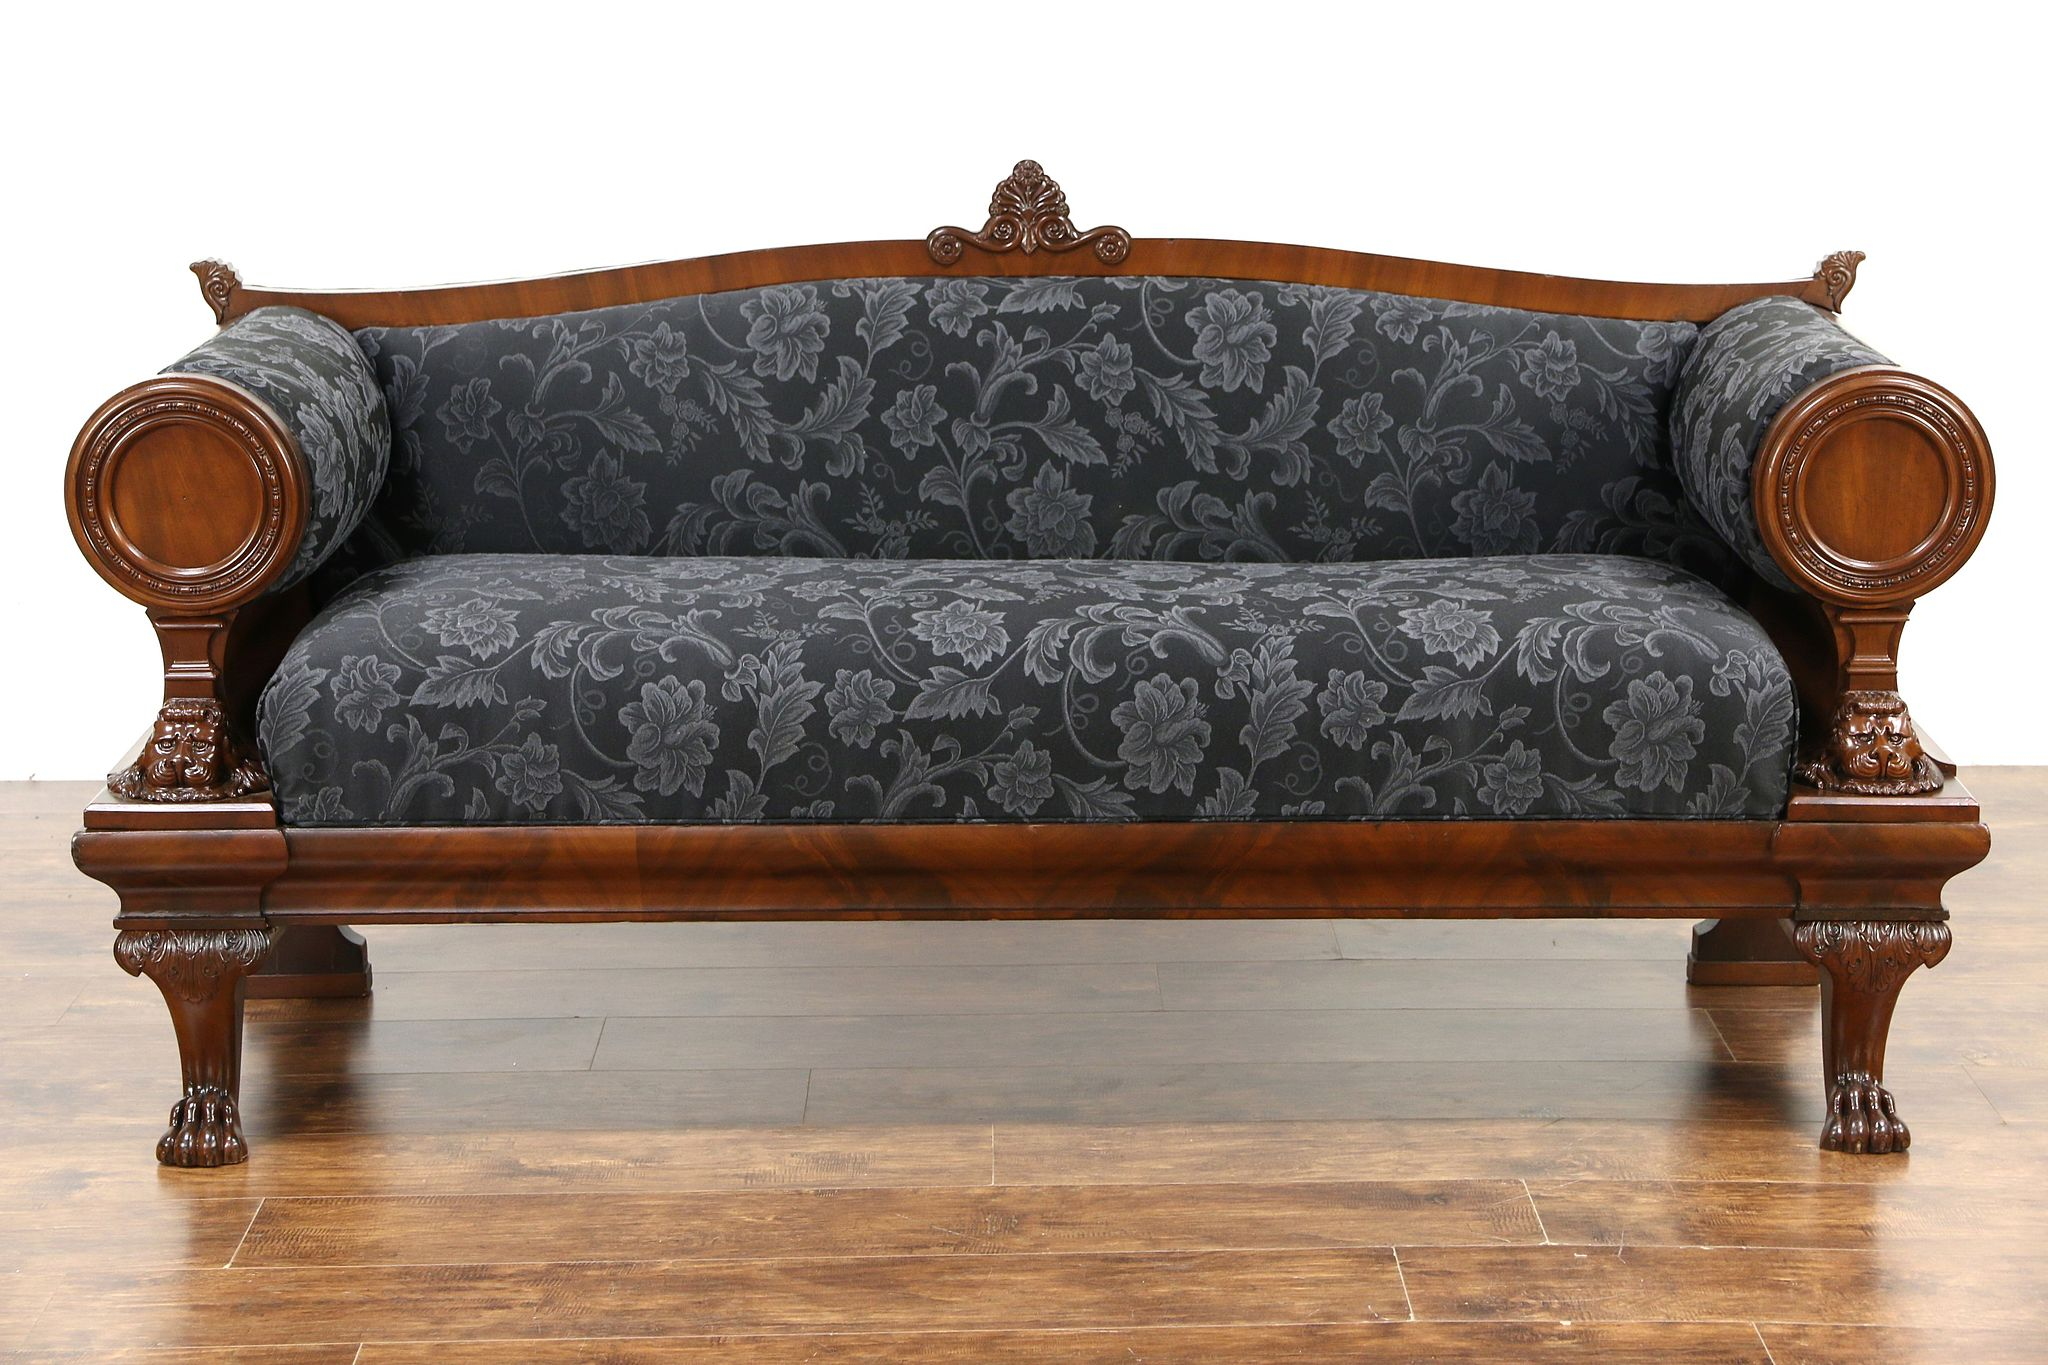 Early American Sofas Styles Hereo Sofa